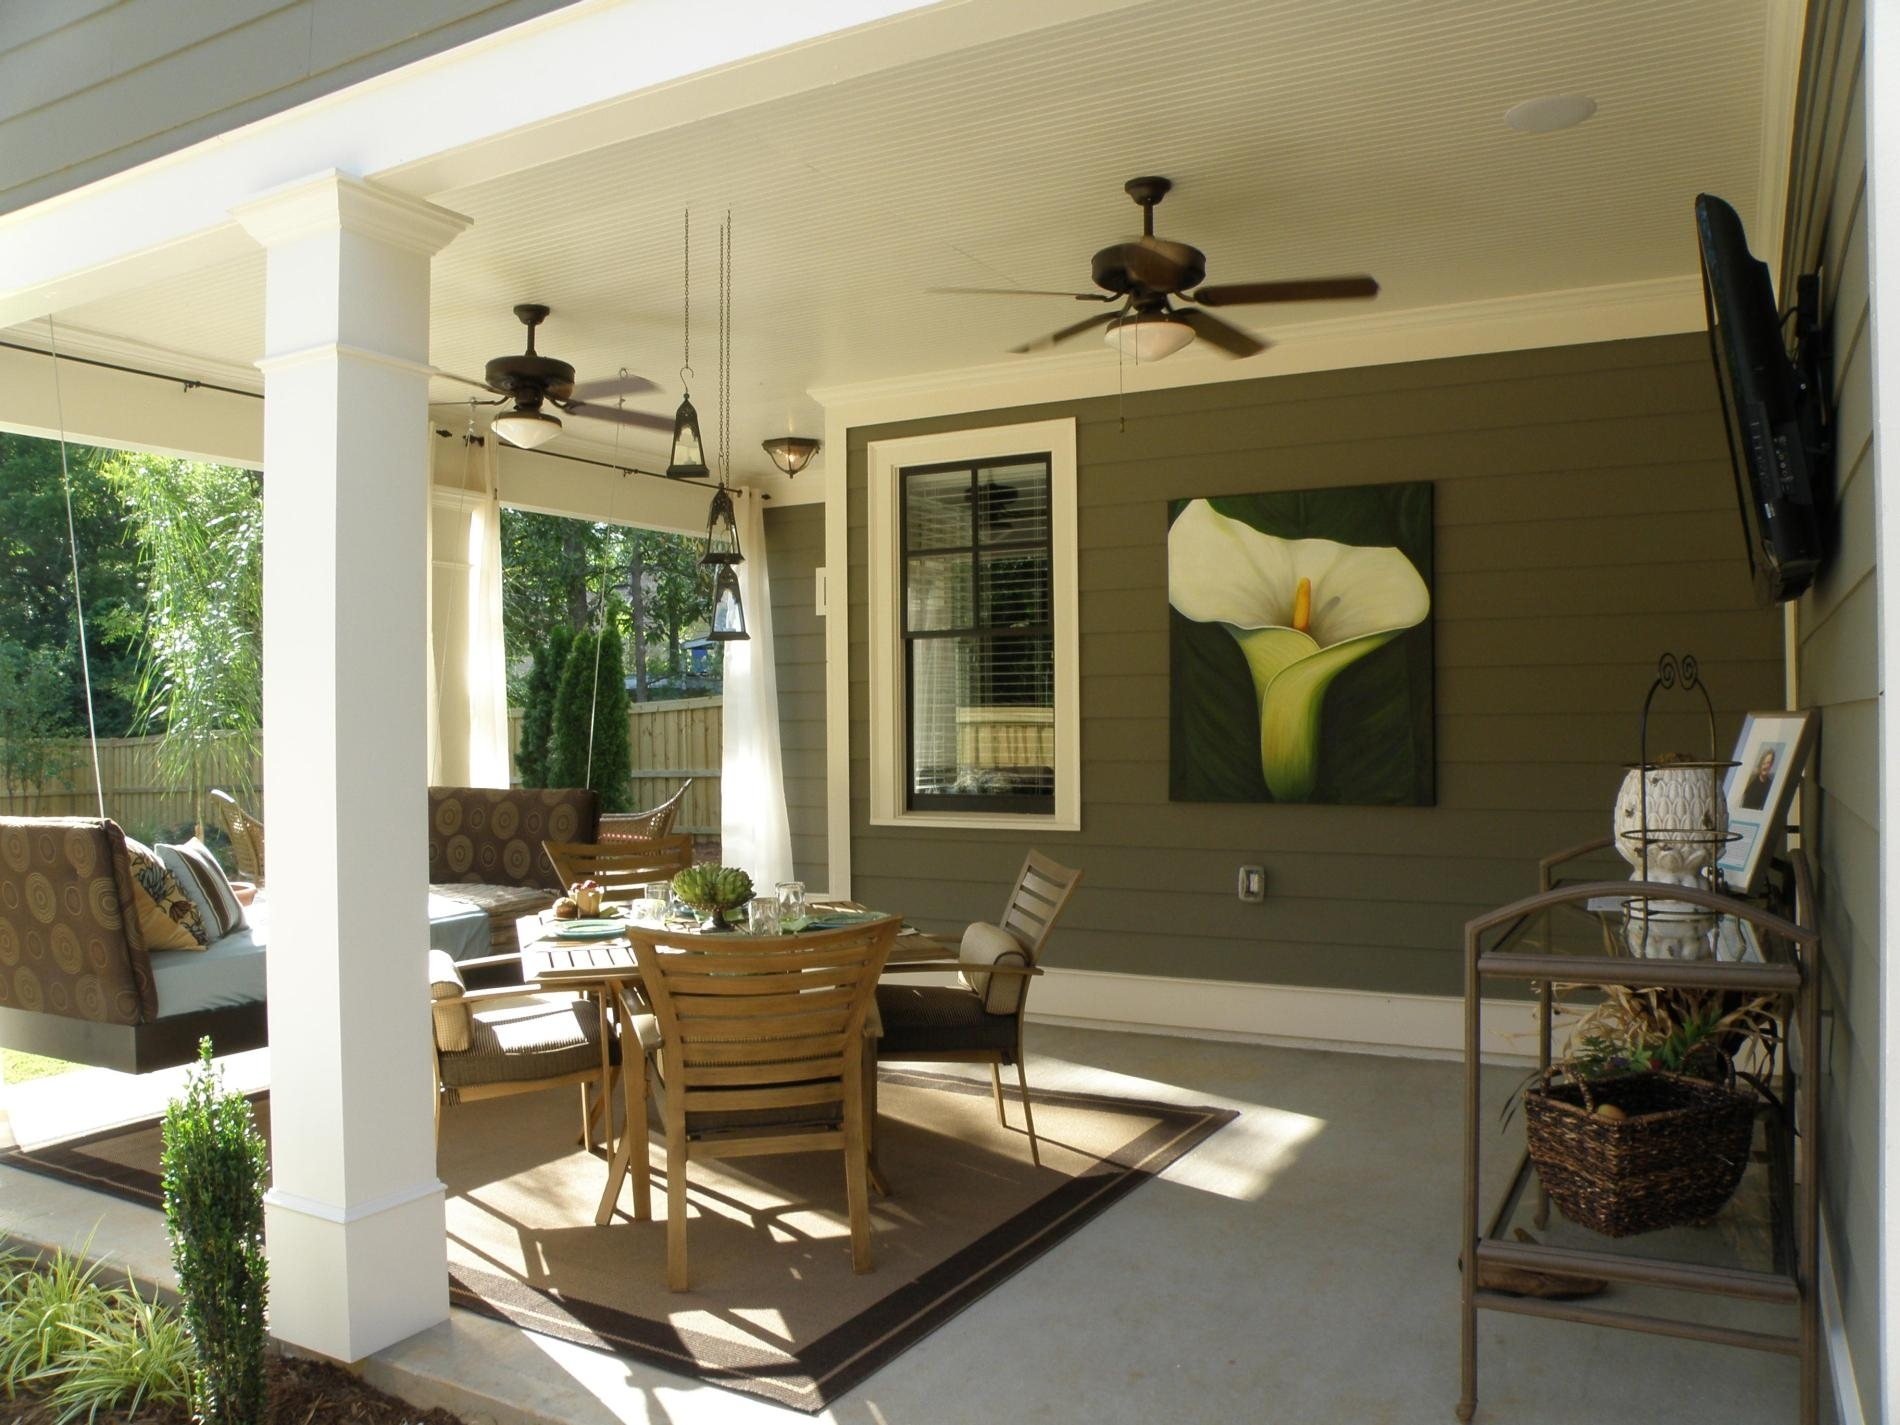 Ideas Outdoor Ceiling Lights Patio Best Lighting – Calladoc Pertaining To Outdoor Ceiling Lights For Patio (#6 of 15)